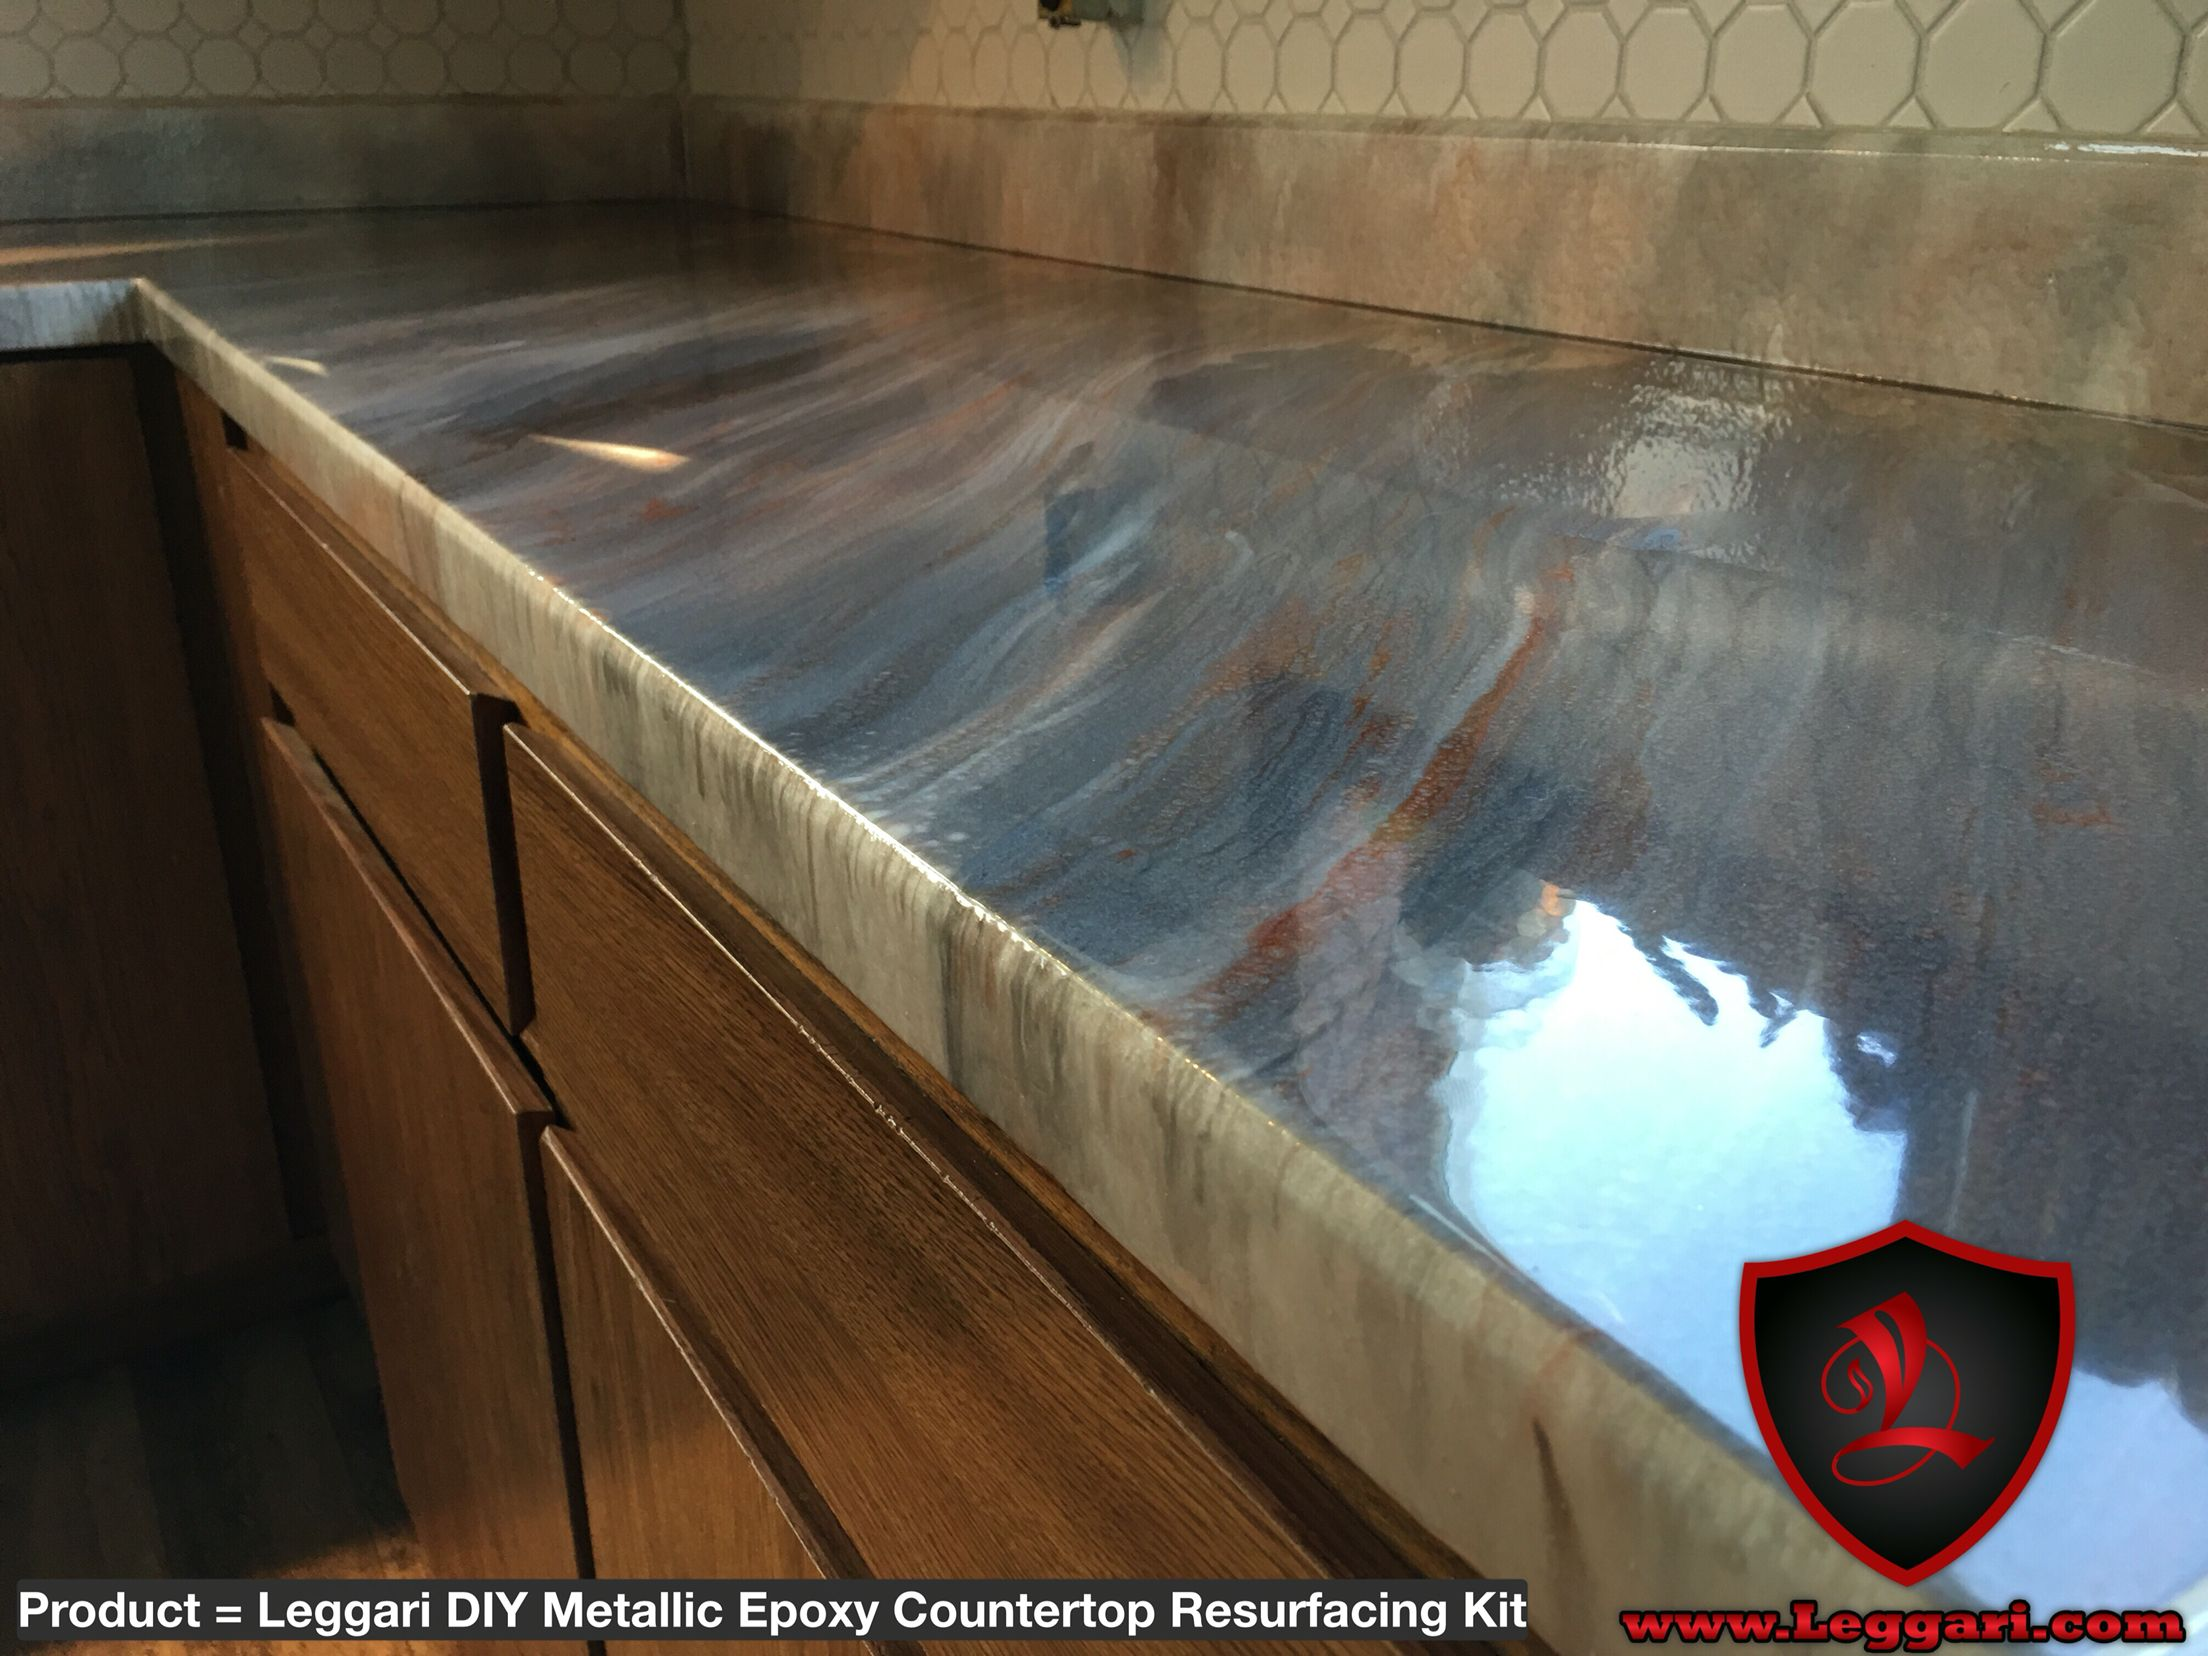 Metallicepoxy Coated Countertop Resurfacing Countertops With One Of Our Metallicepoxykit In 2019 Epoxy Countertop Epoxy Countertop Kit